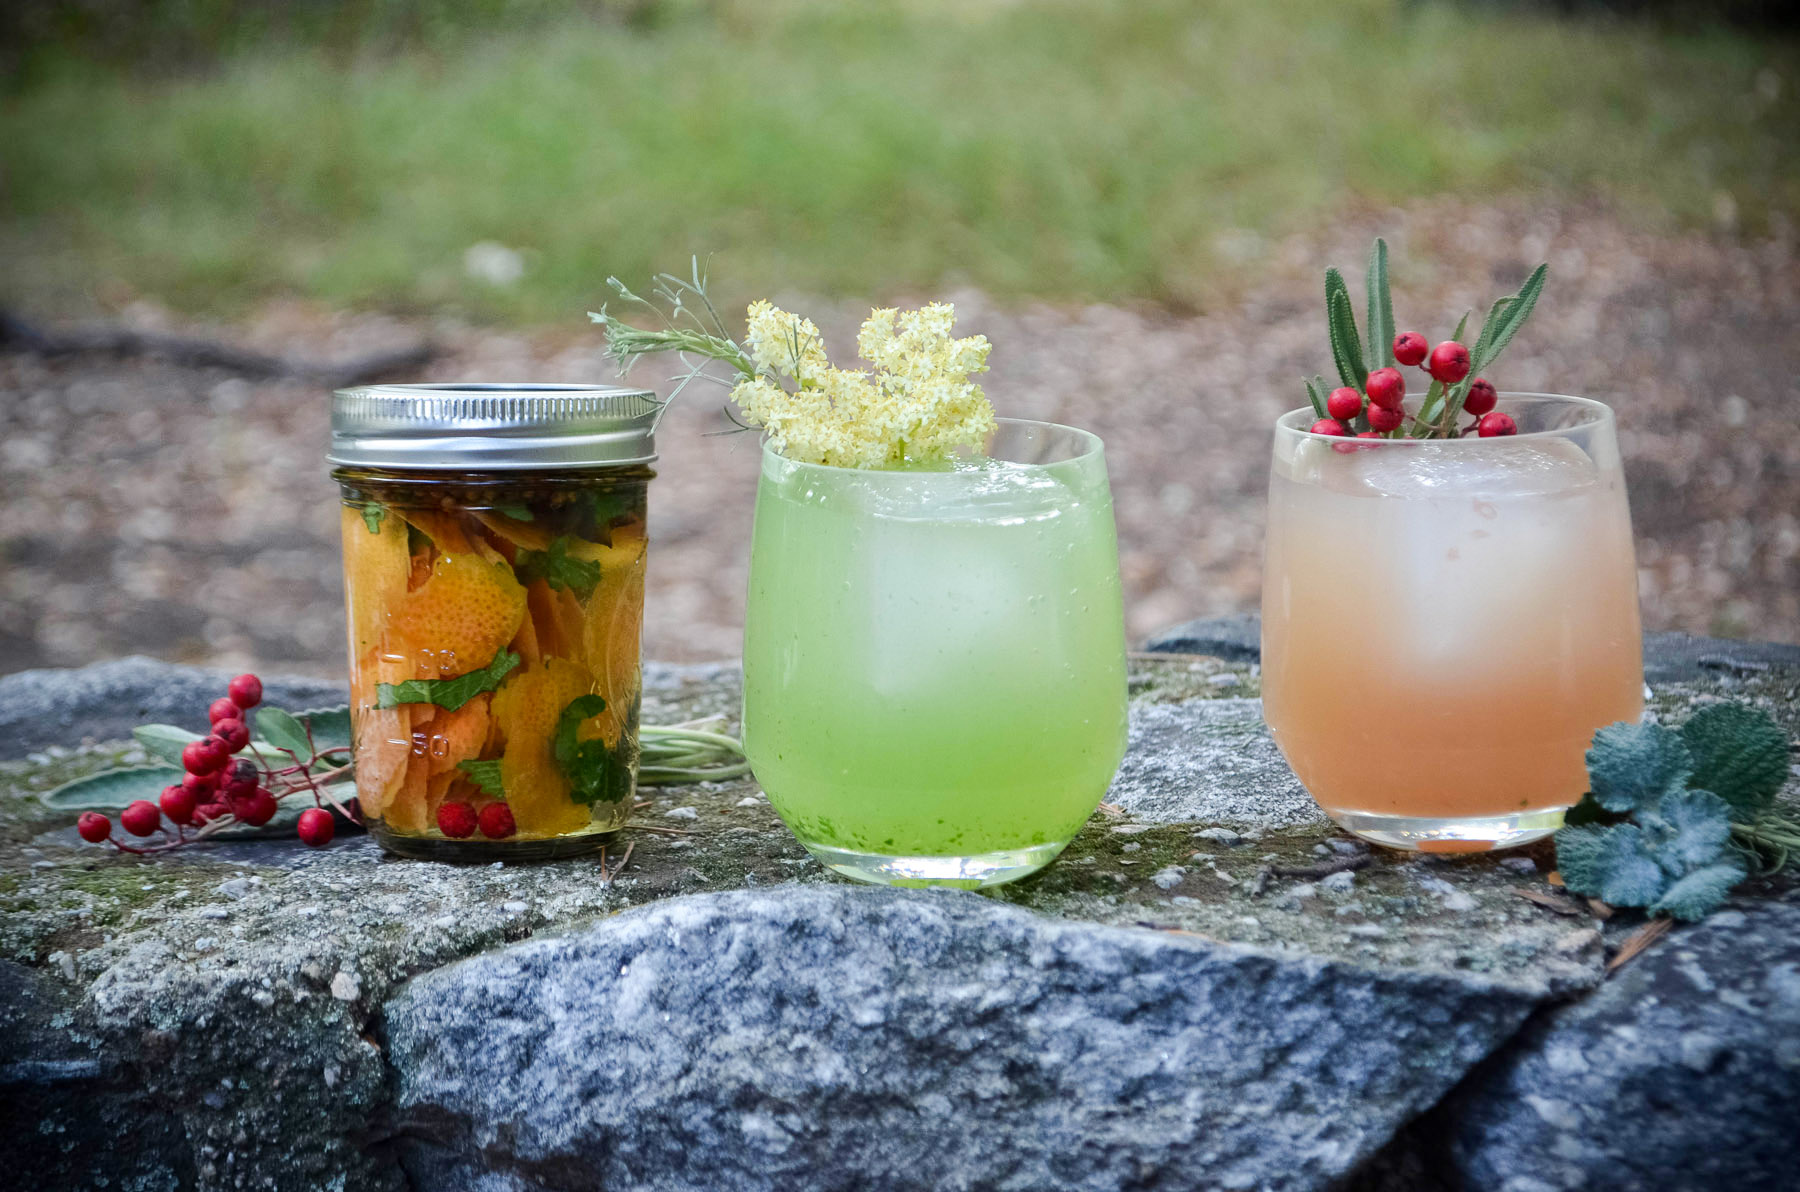 left-to-right-socal-grapefruit-bitters-grapefruit-and-sage-smash-the-wildcrafted-word_23580091292_o